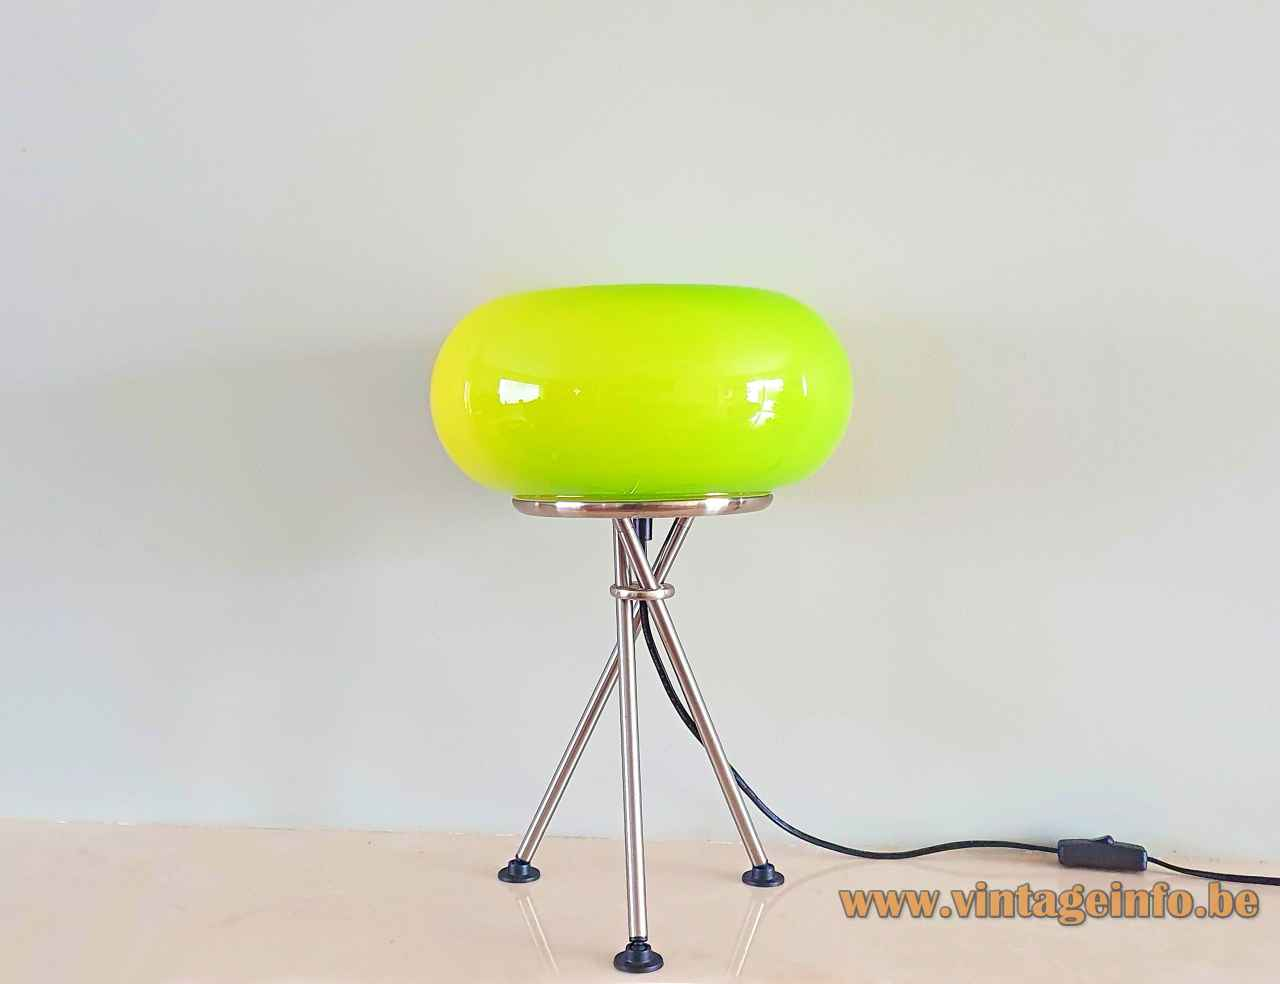 Trio Leuchten green glass table lamp Olympic chrome tripod base oval globe lampshade 1990s 2000s Germany